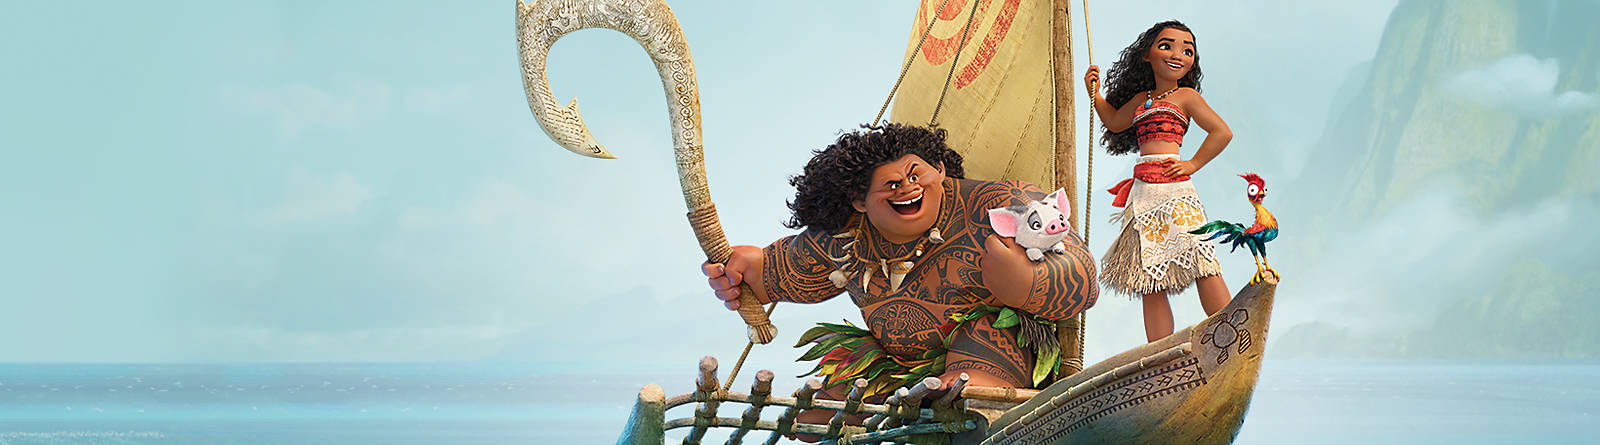 Moana See how far you'll go with our range of Moana toys, costumes, clothing, accessories and more